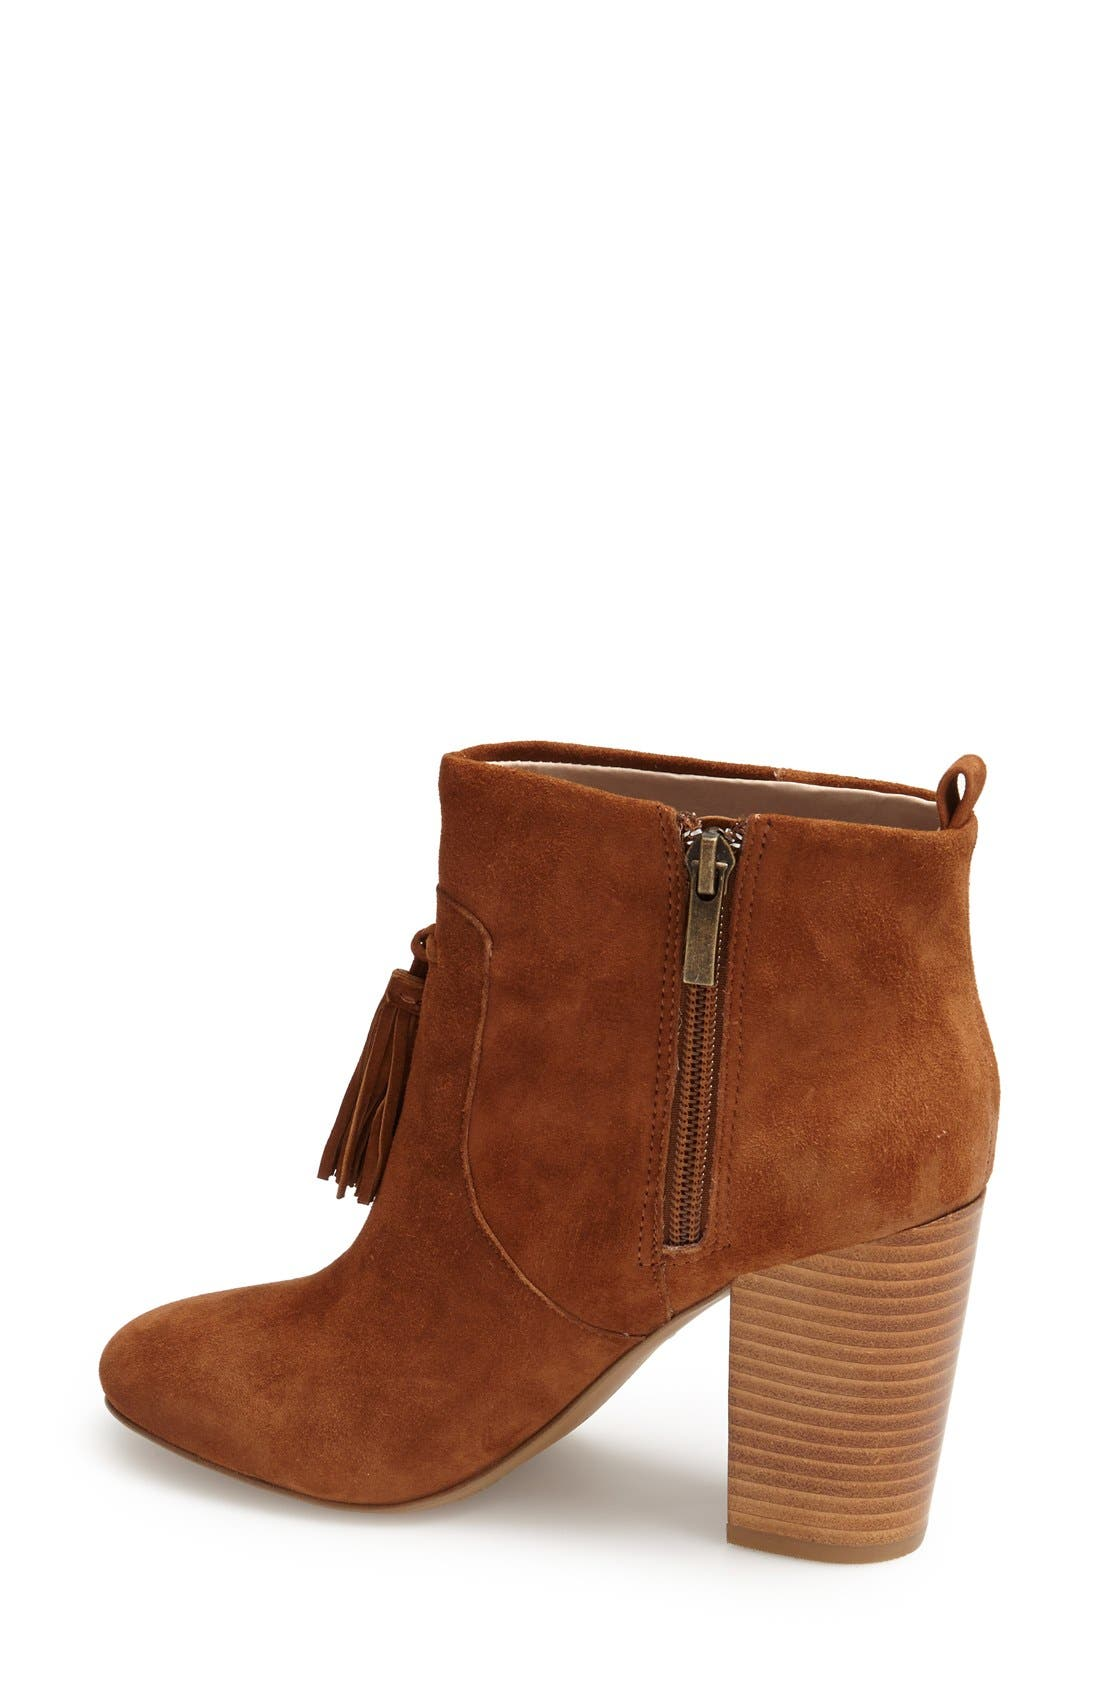 Alternate Image 2  - French Connection 'Linds' Tassel Ankle Bootie (Women)